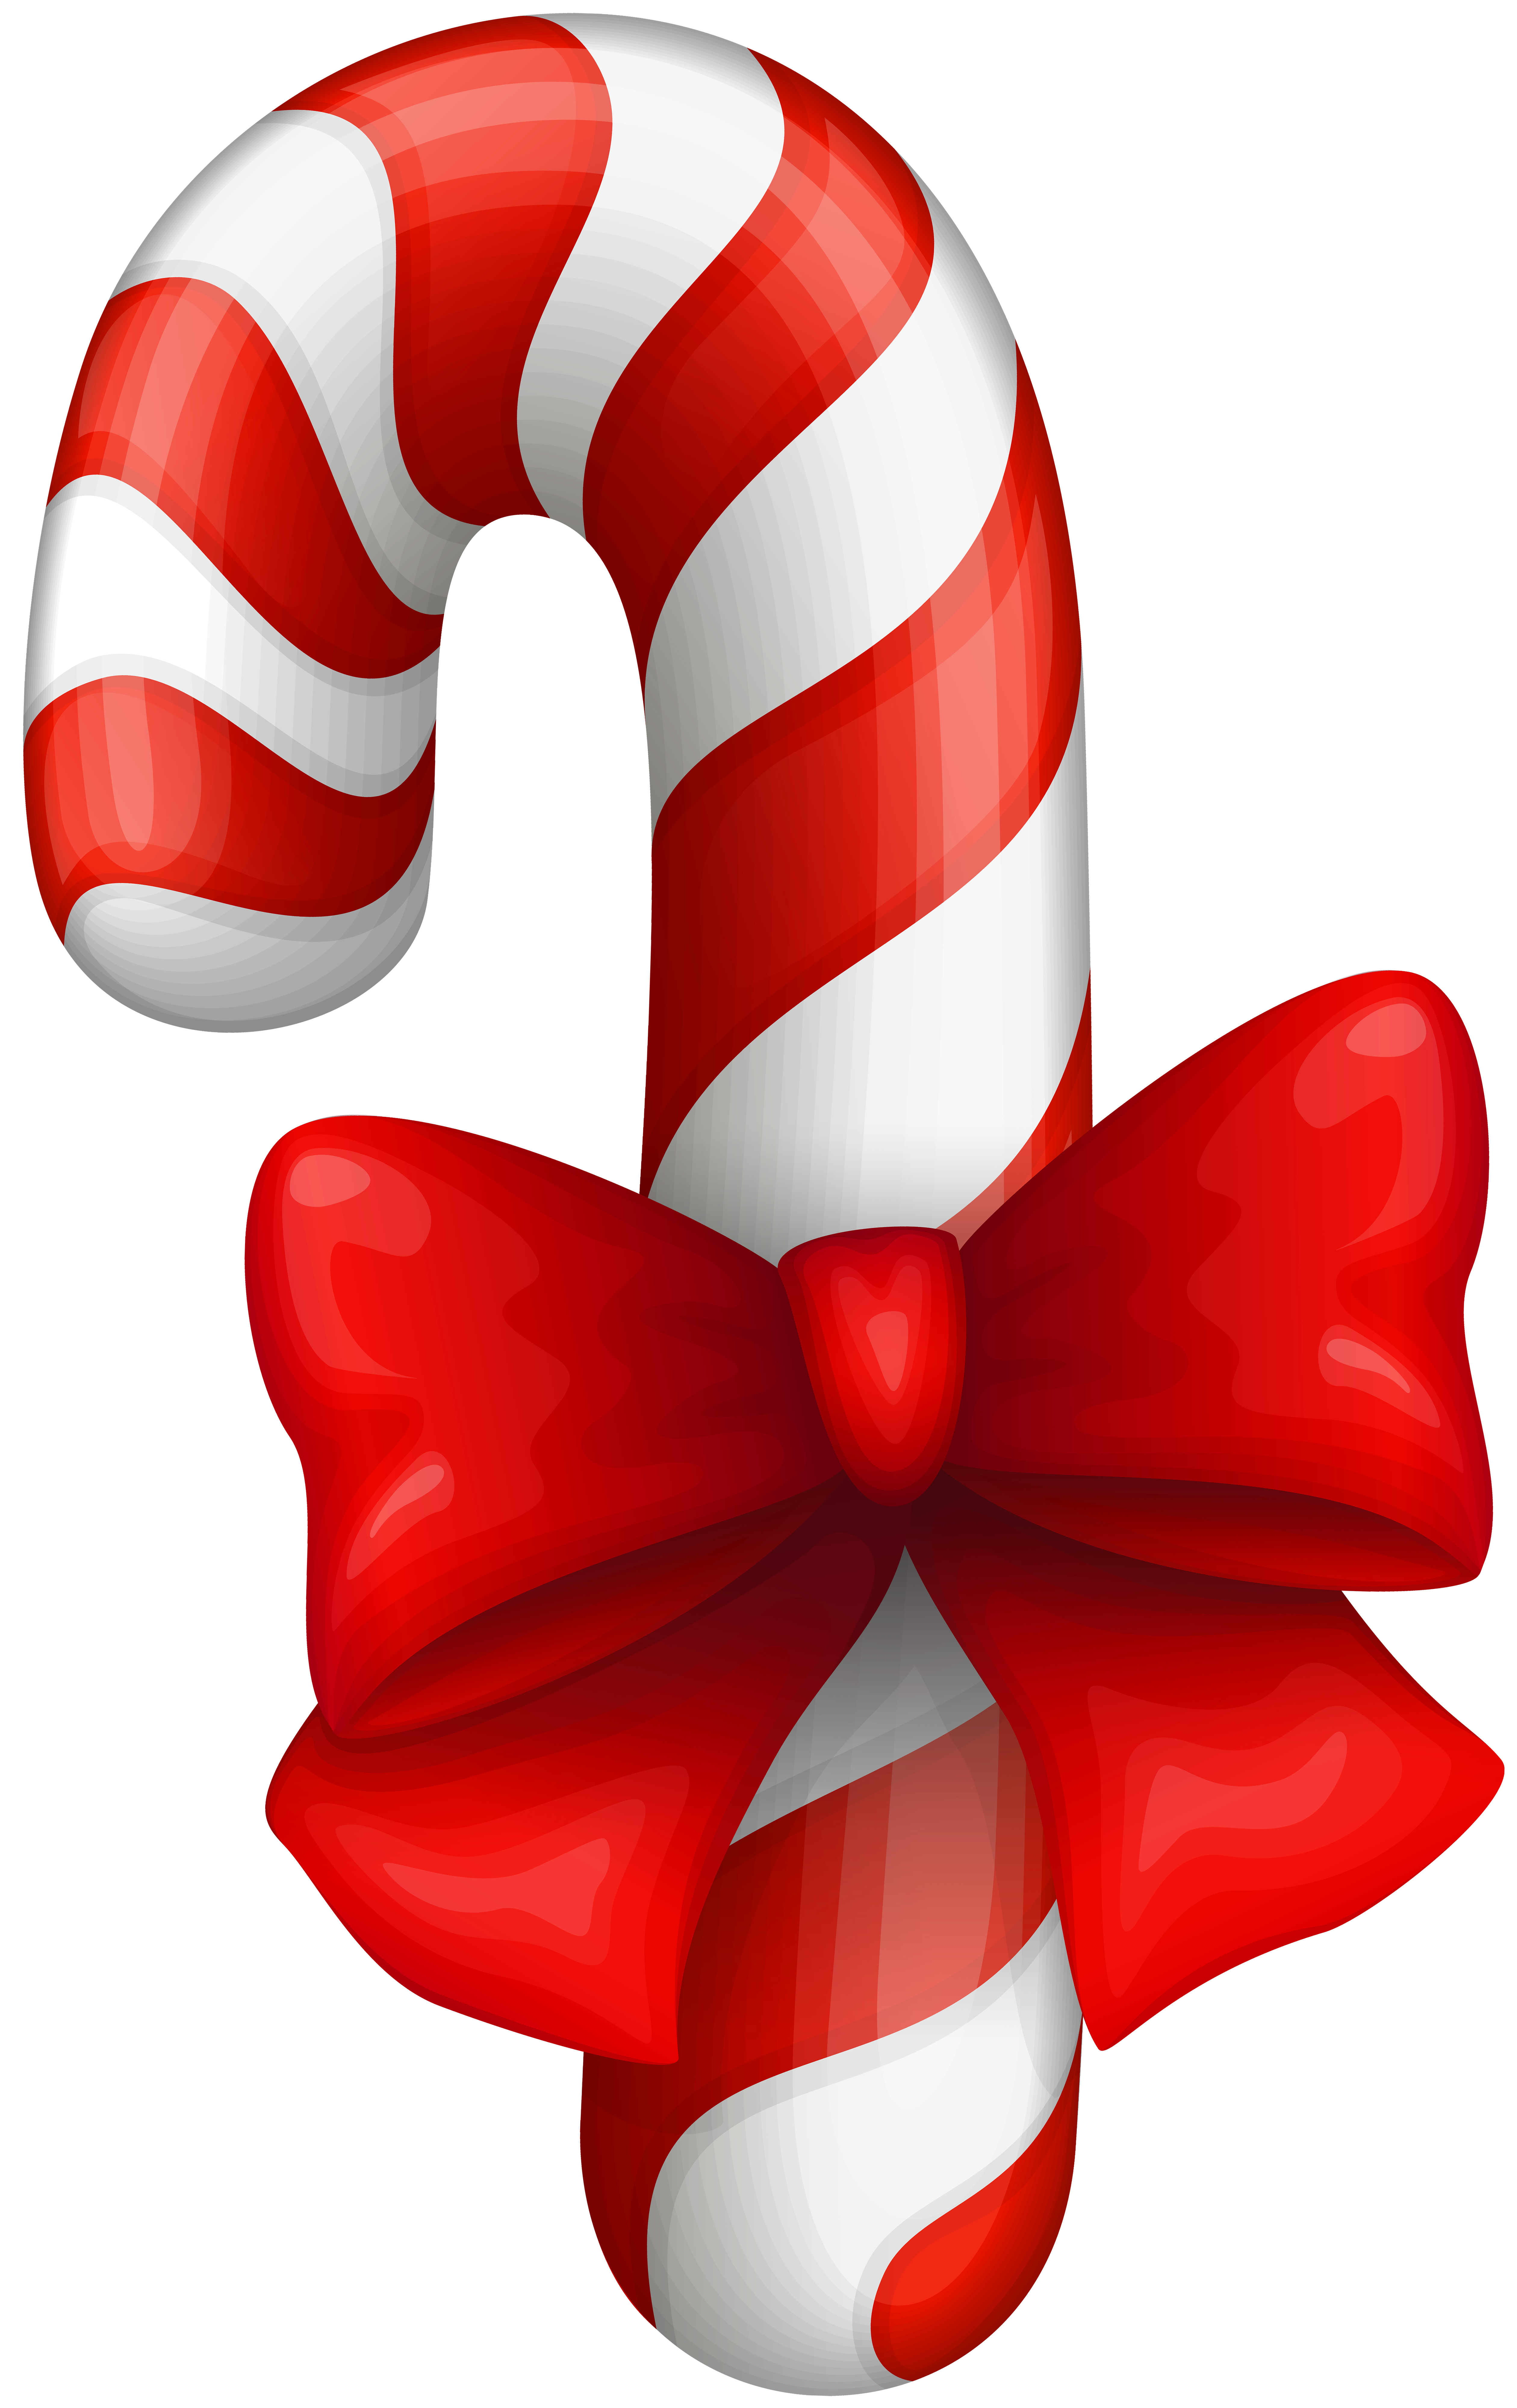 Clipart candy canes clipart free library Candy Cane PNG Clip Art Image | Gallery Yopriceville - High-Quality ... clipart free library